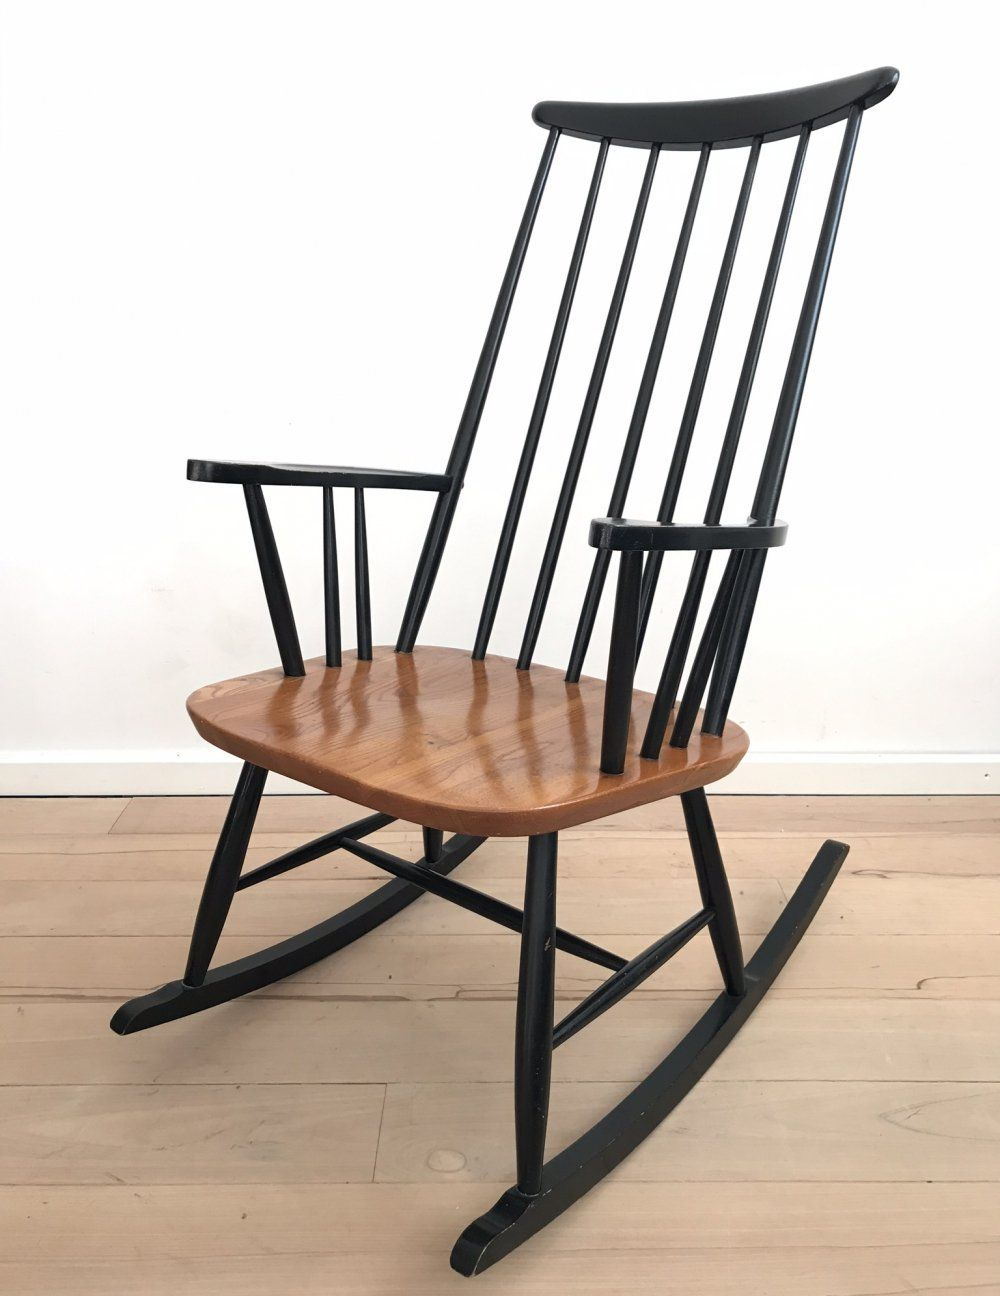 For sale Rocking chair by Ilmari Tapiovaara for Pastoe, 1960s